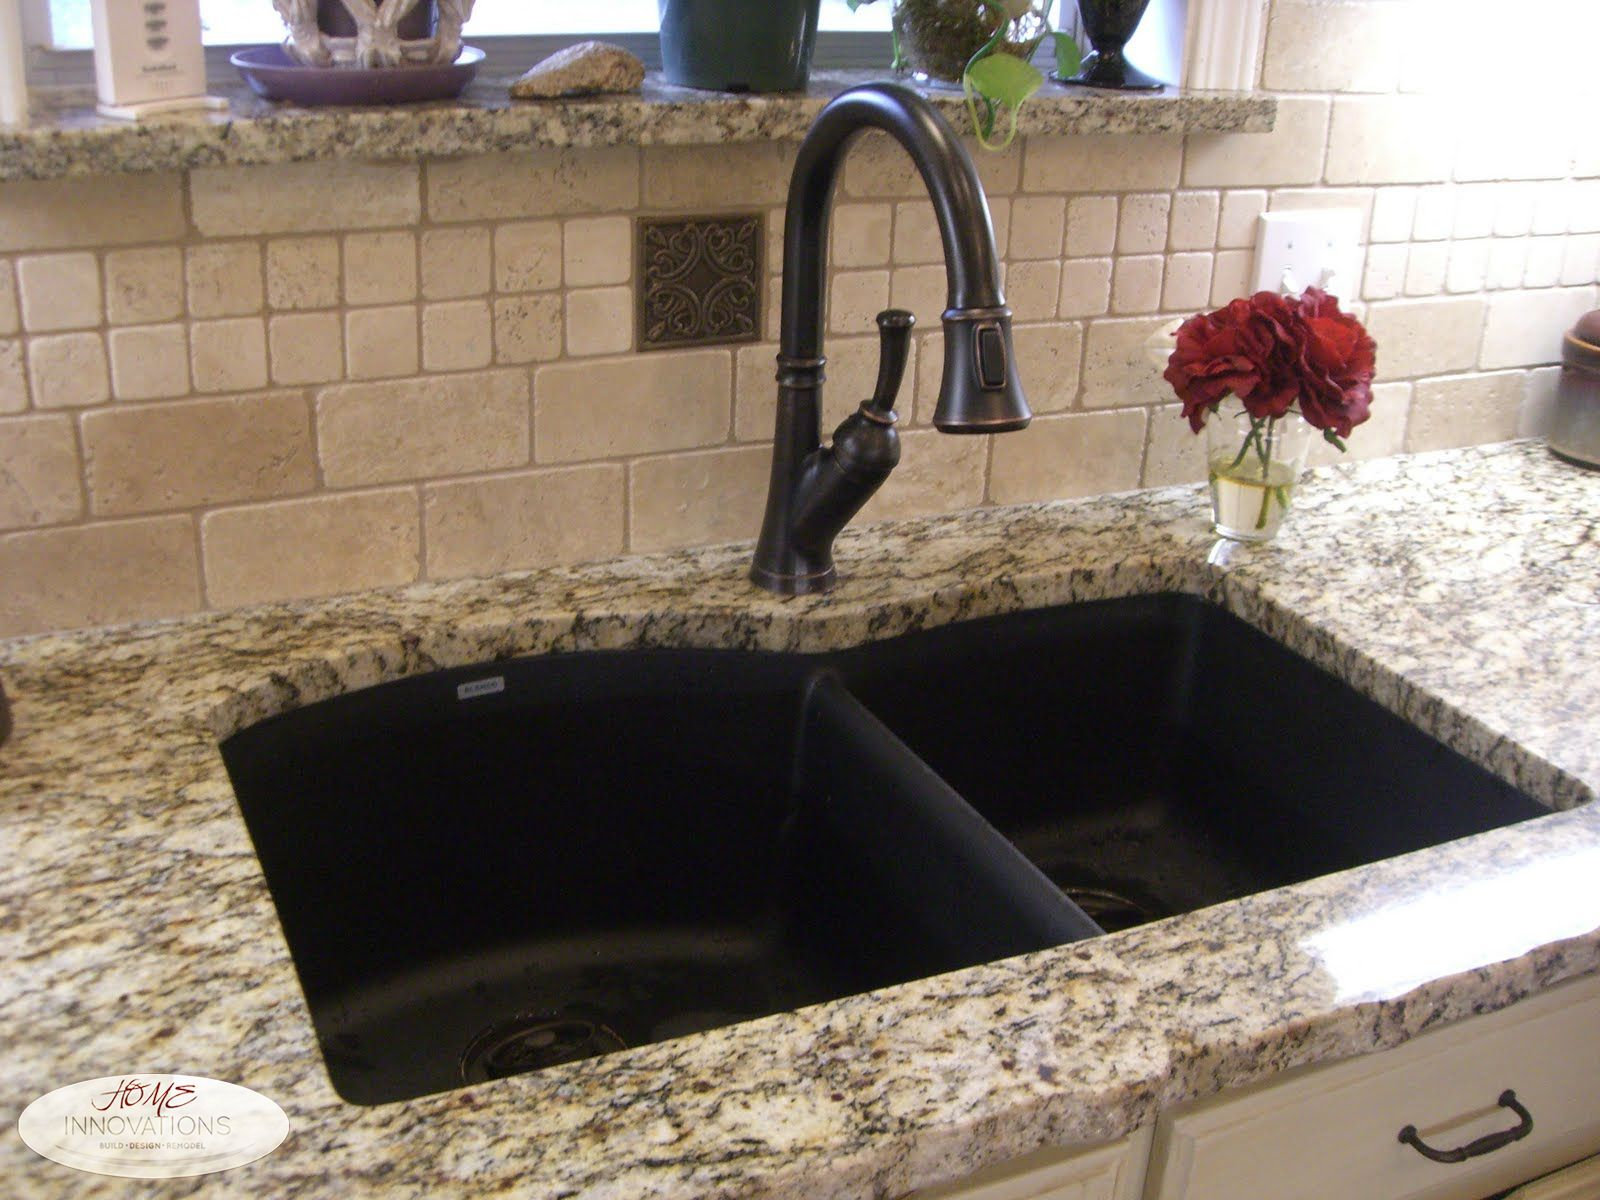 Marble Basin Countertop Composite Granite Double Bowl Sink Orb Delta Faucet